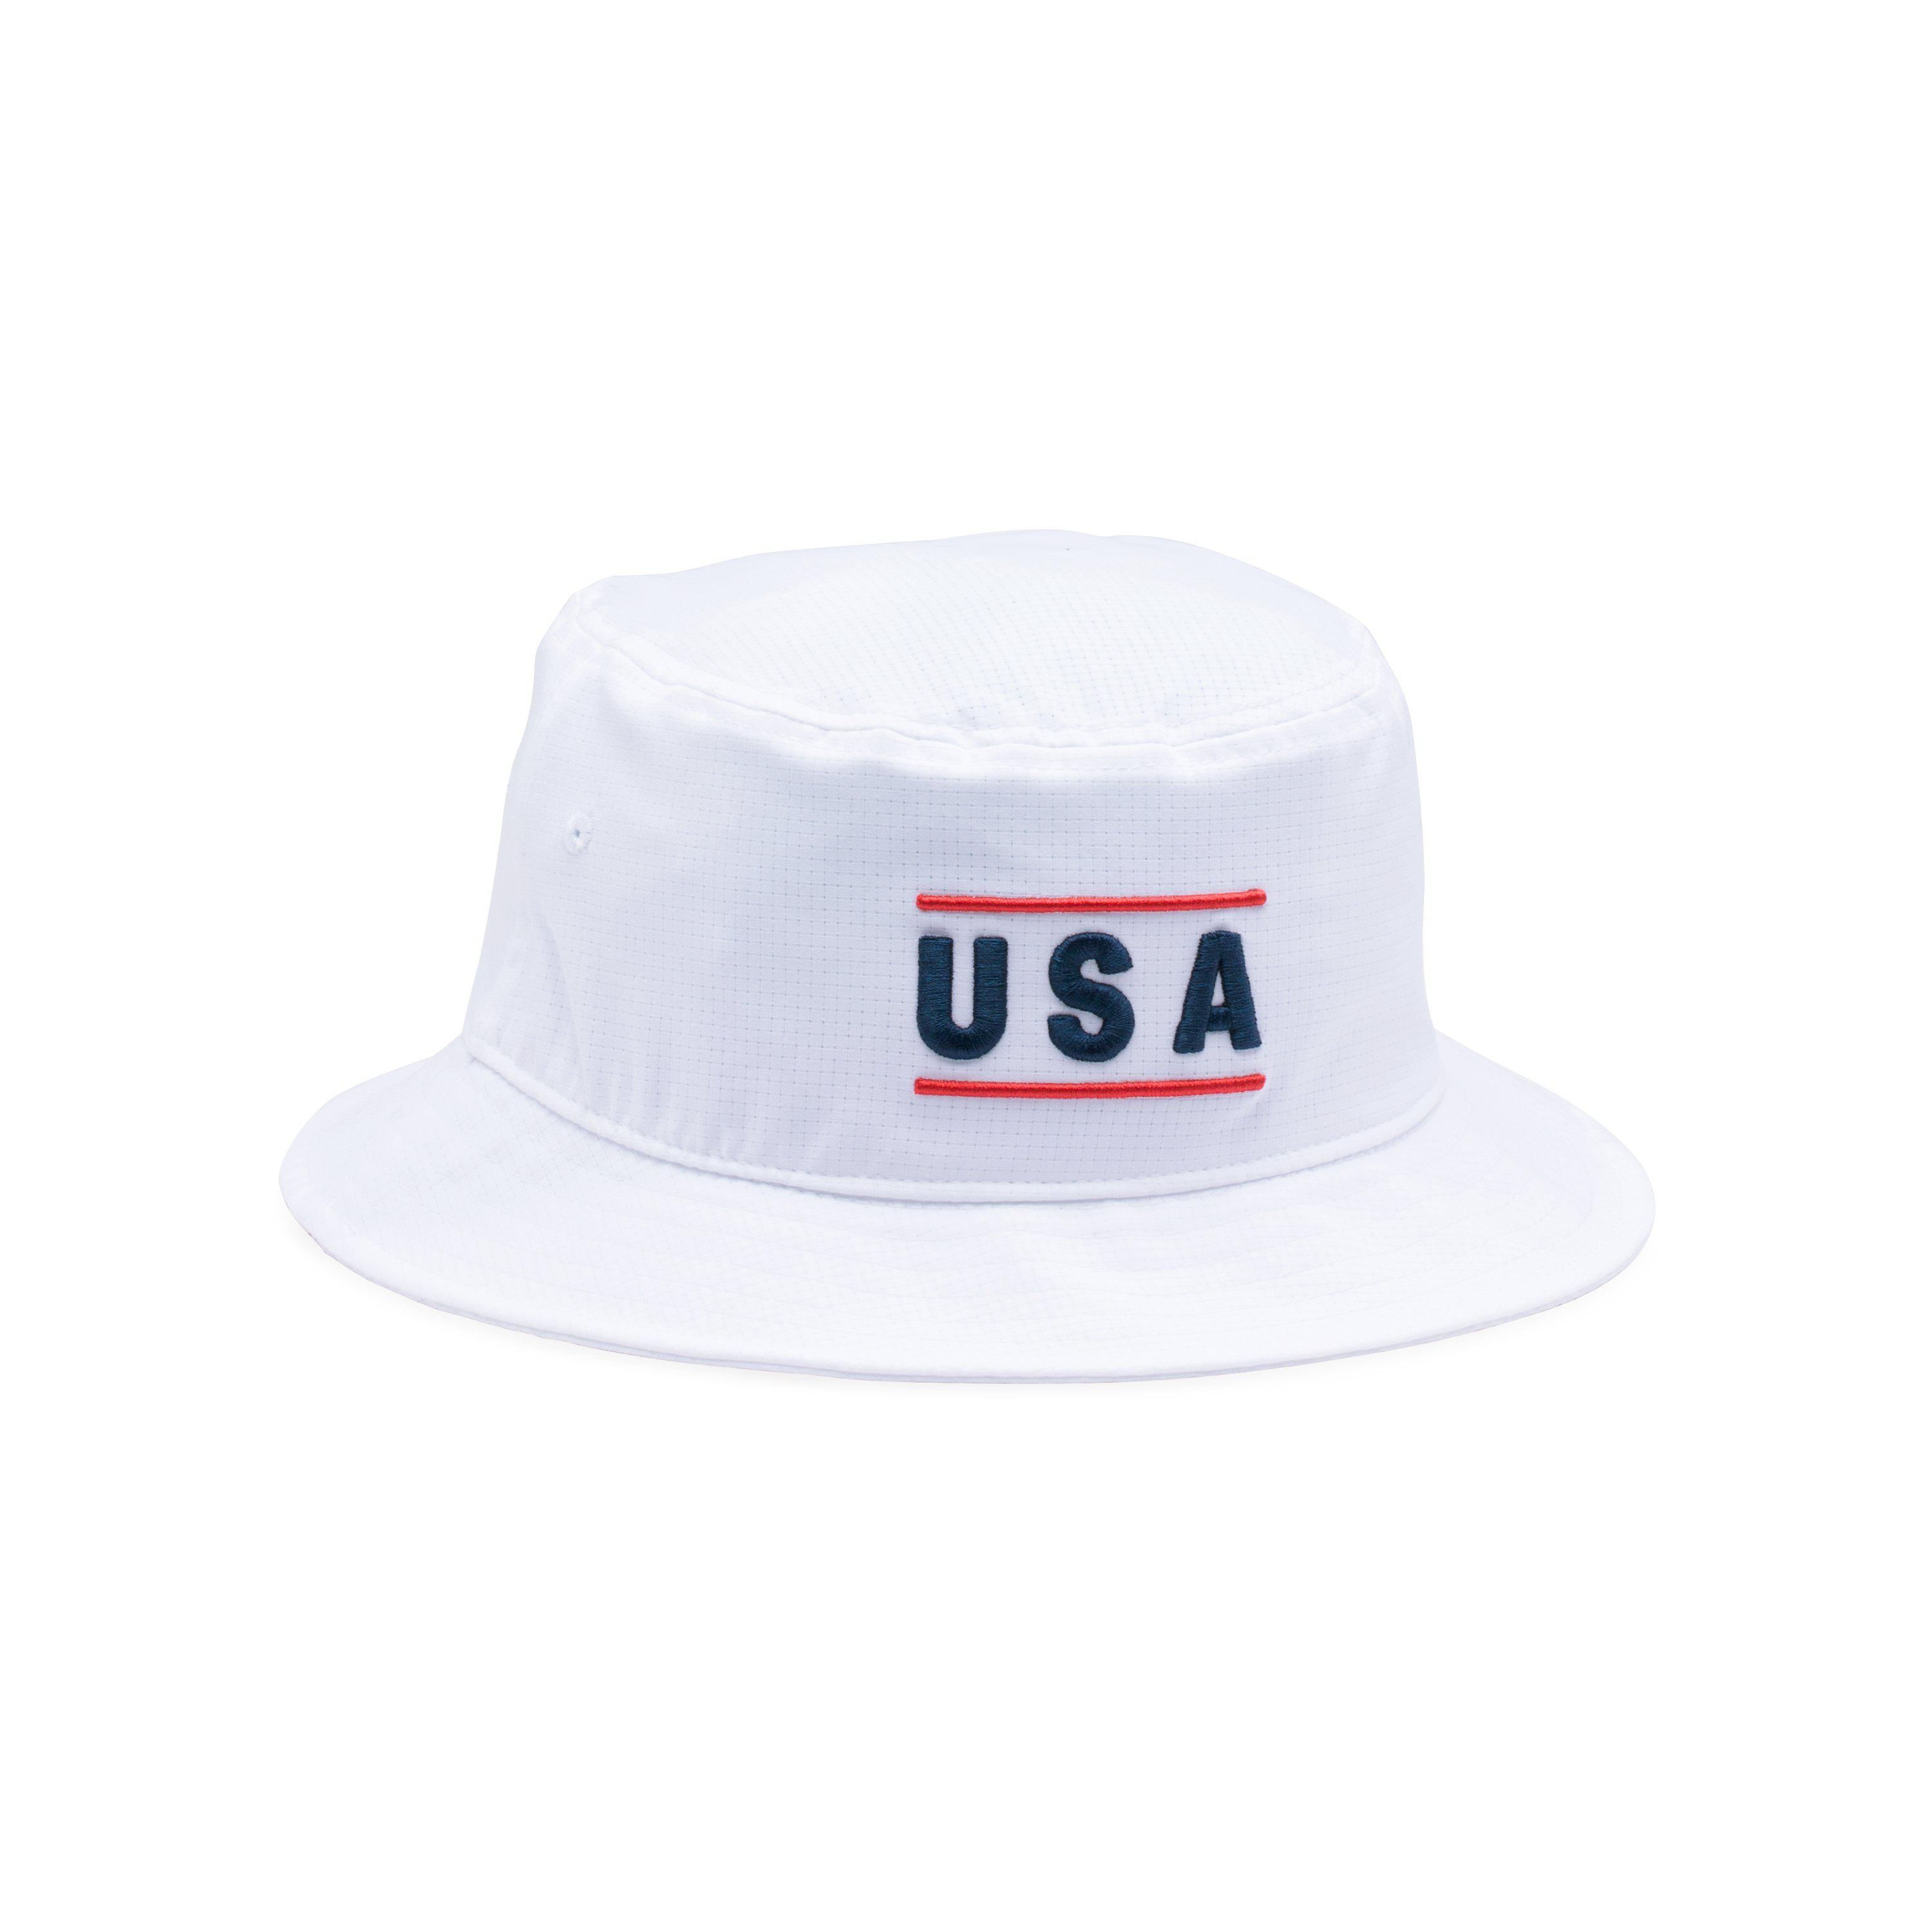 f72eecf297c Lyst - Under Armour Men s Ua Armourventtm Bucket Hat in White for Men